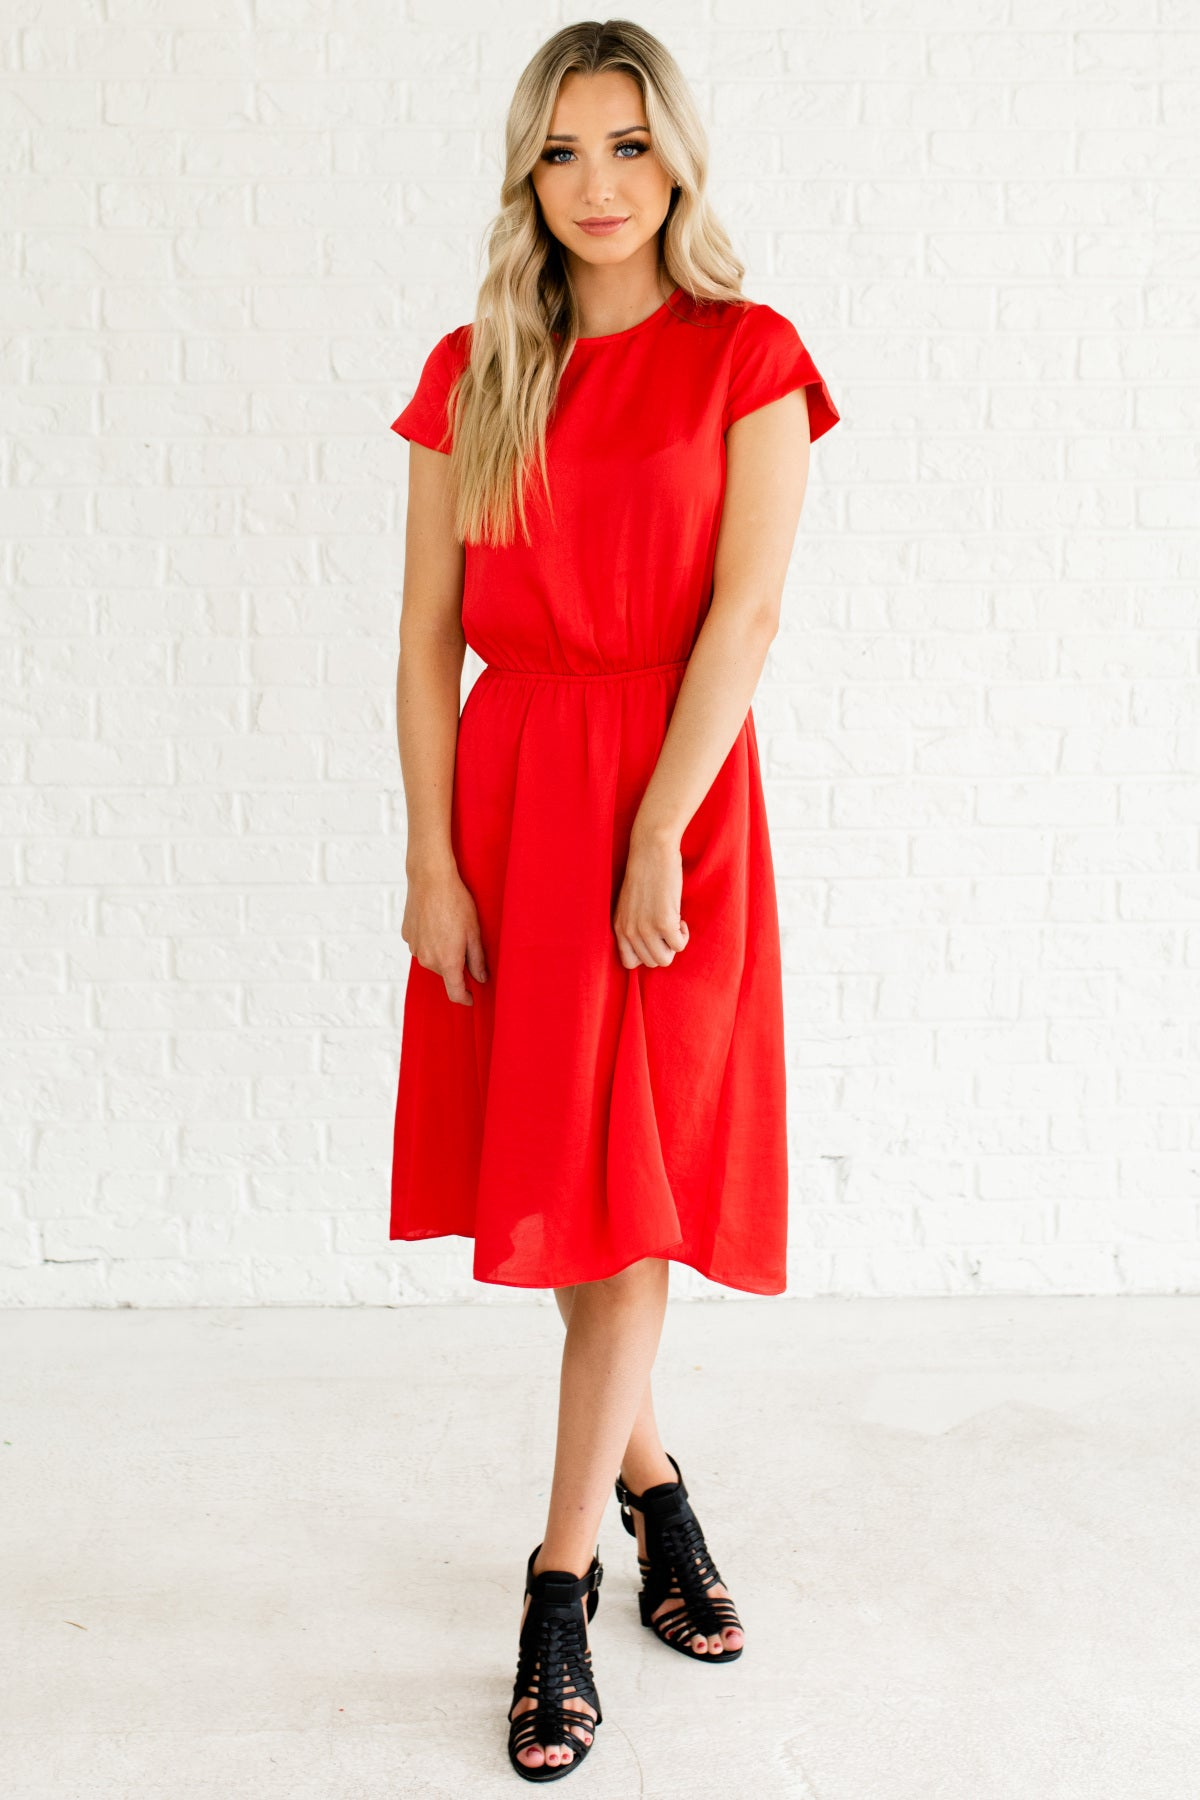 Red Satin Cap Sleeve Knee Length Affordable Online Boutique Dresses for Women